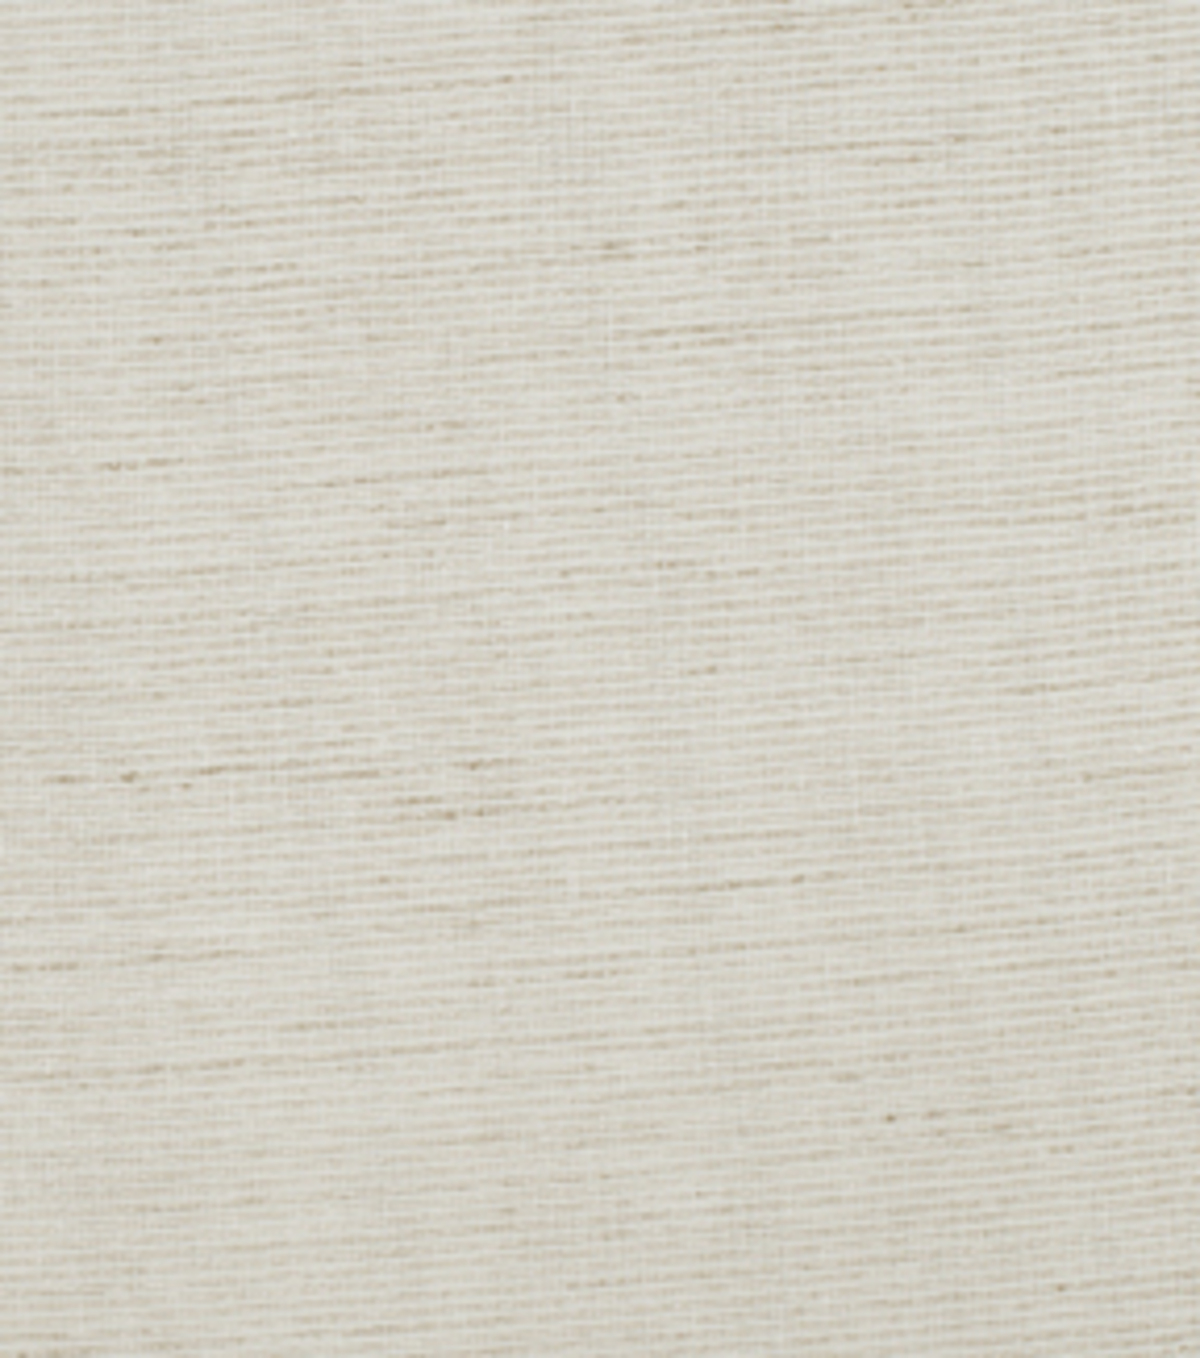 Home Decor 8\u0022x8\u0022 Fabric Swatch-Eaton Square Baez Teak